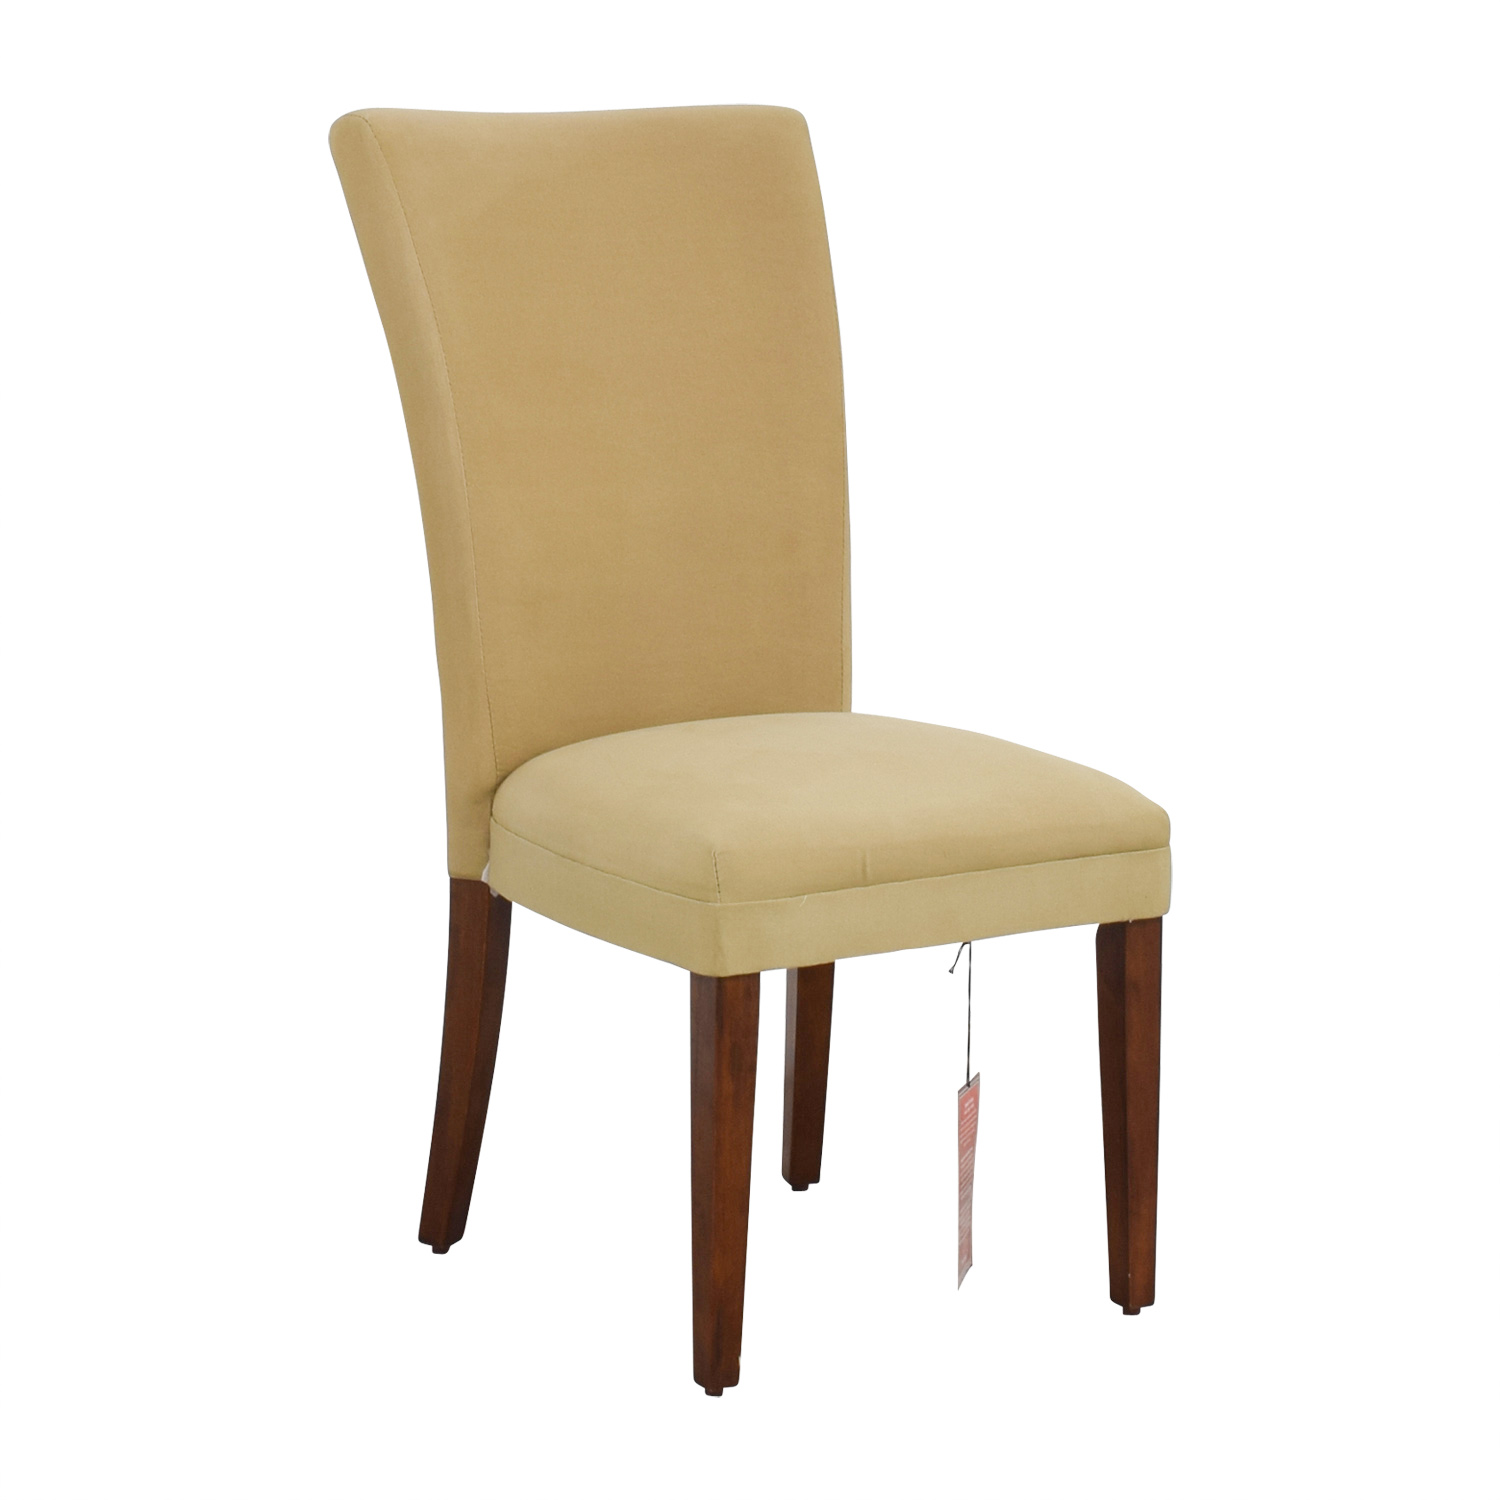 49 OFF  Coaster Coaster High Back Tan Upholstered Chair